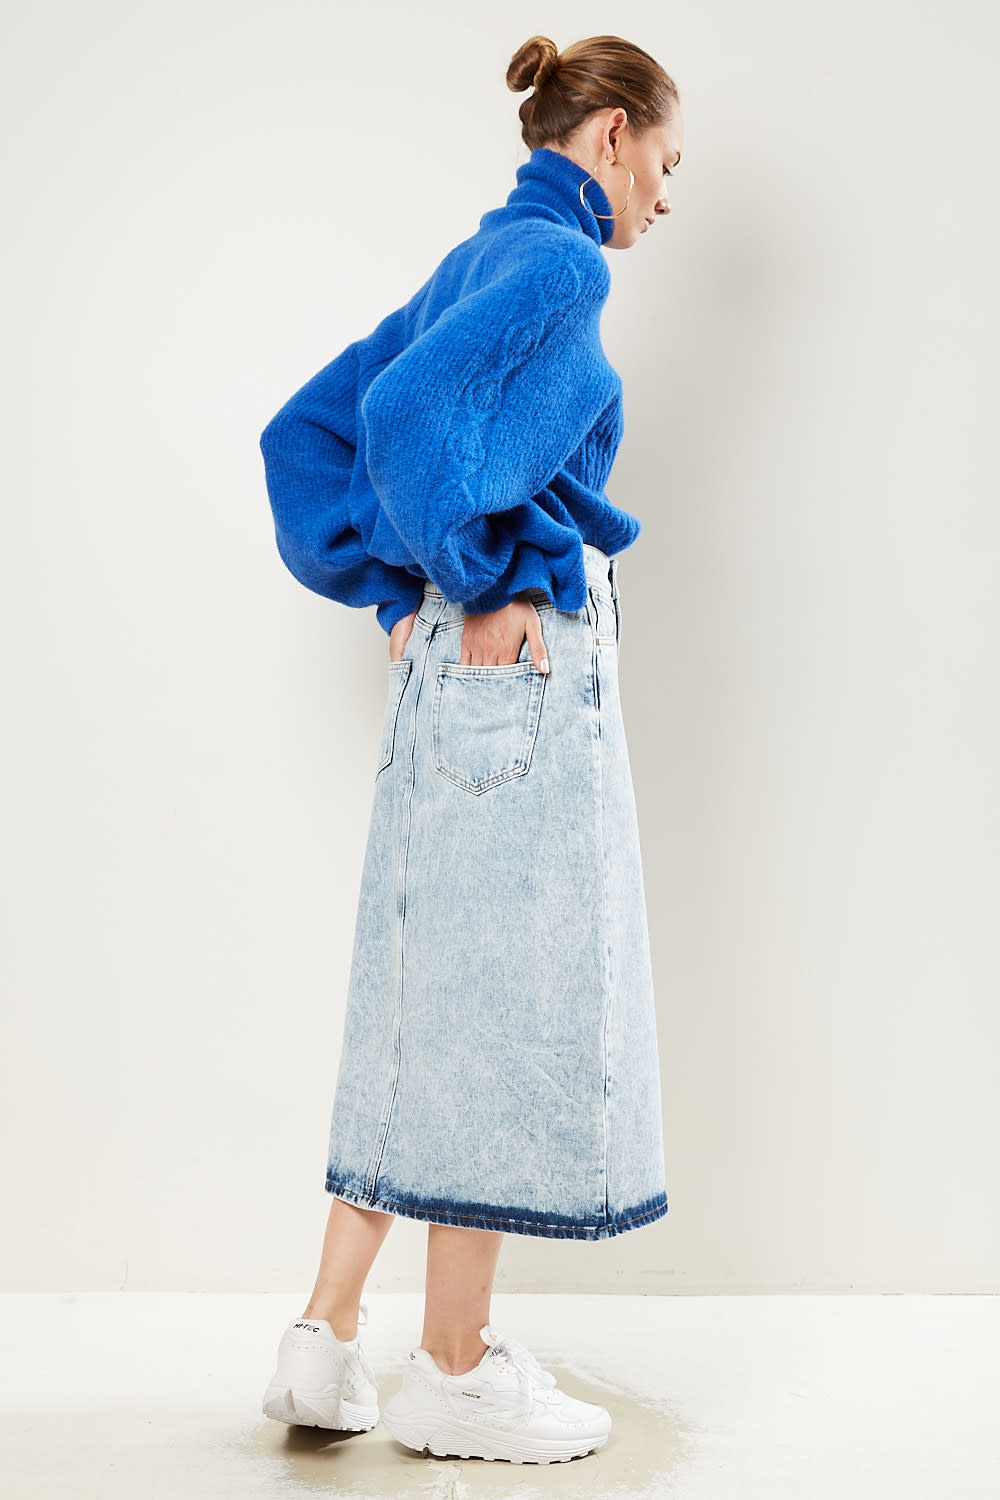 Les Coyotes de Paris Yilan acid denim skirt